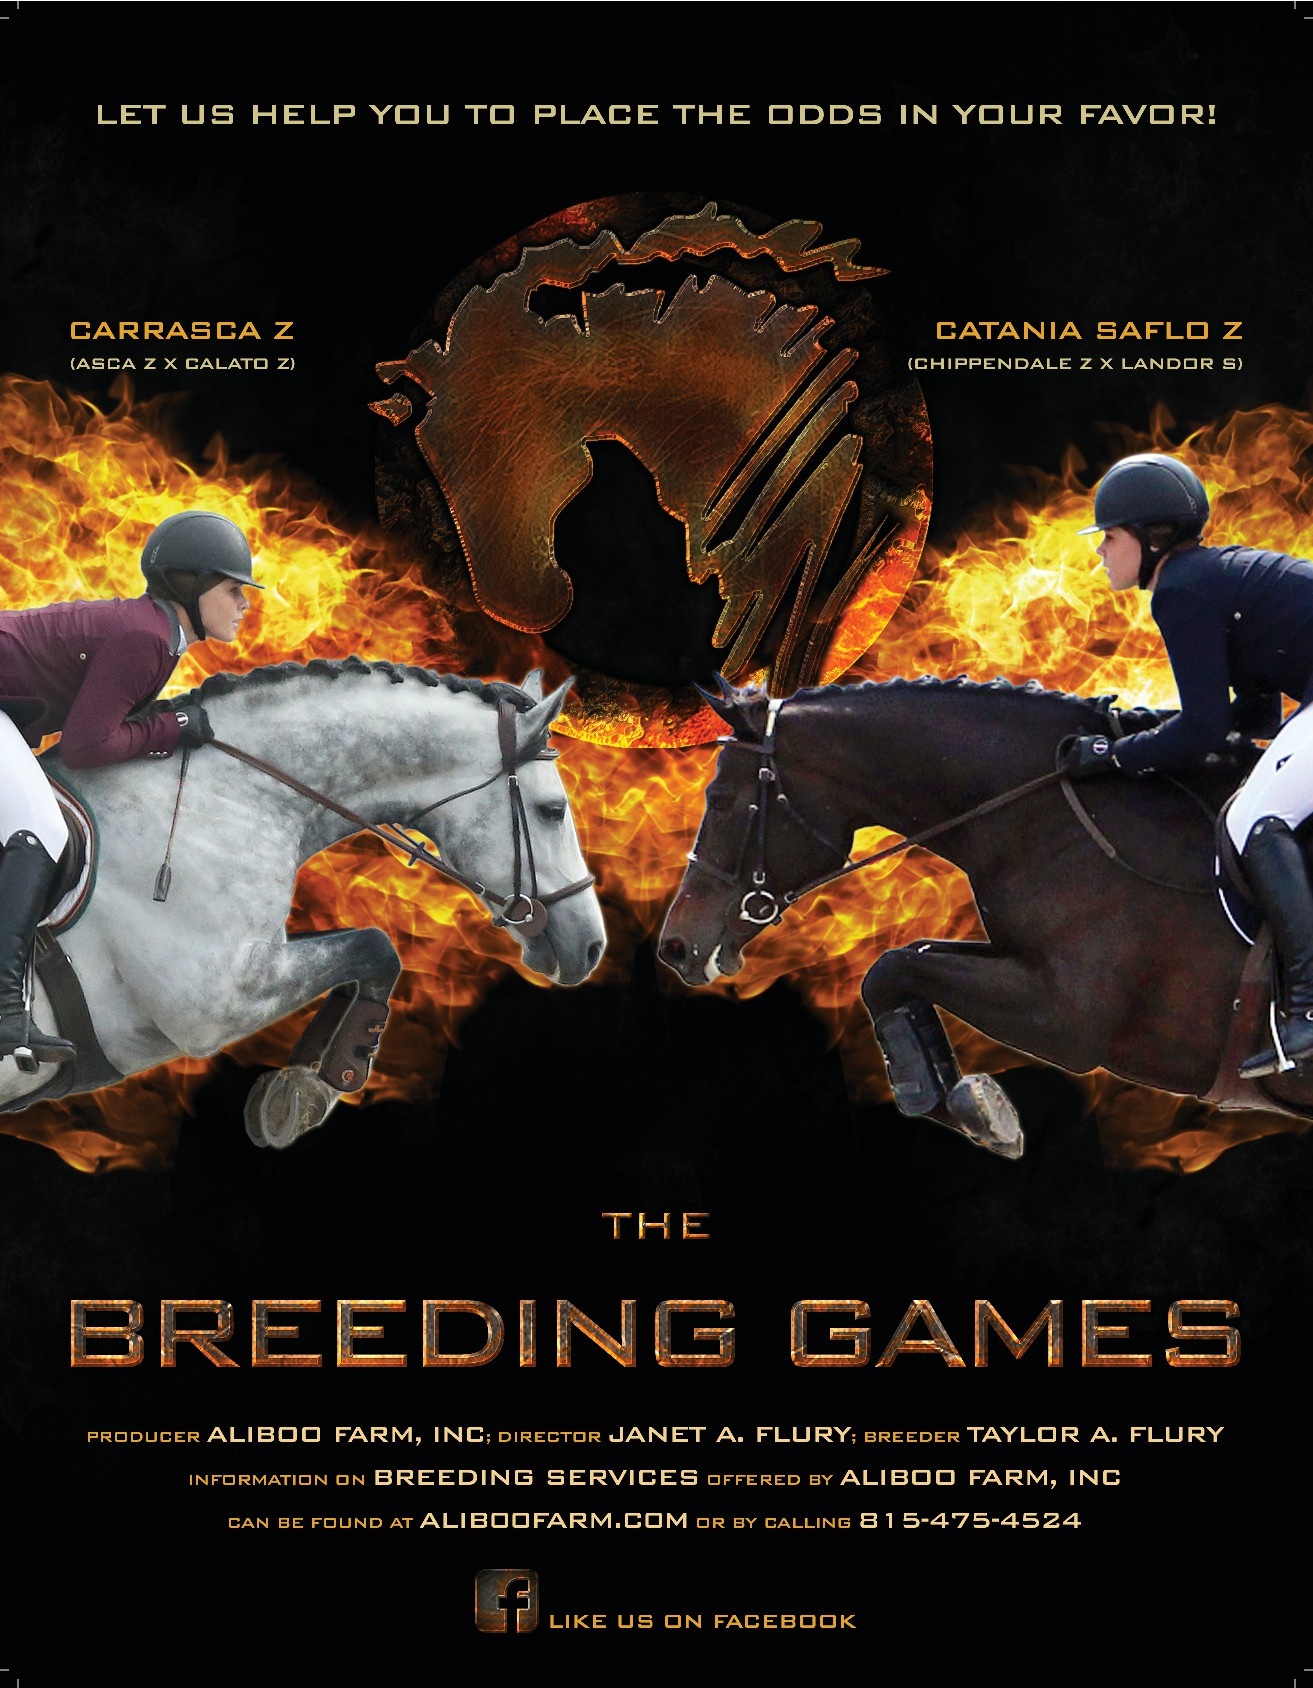 The Game of Breeding